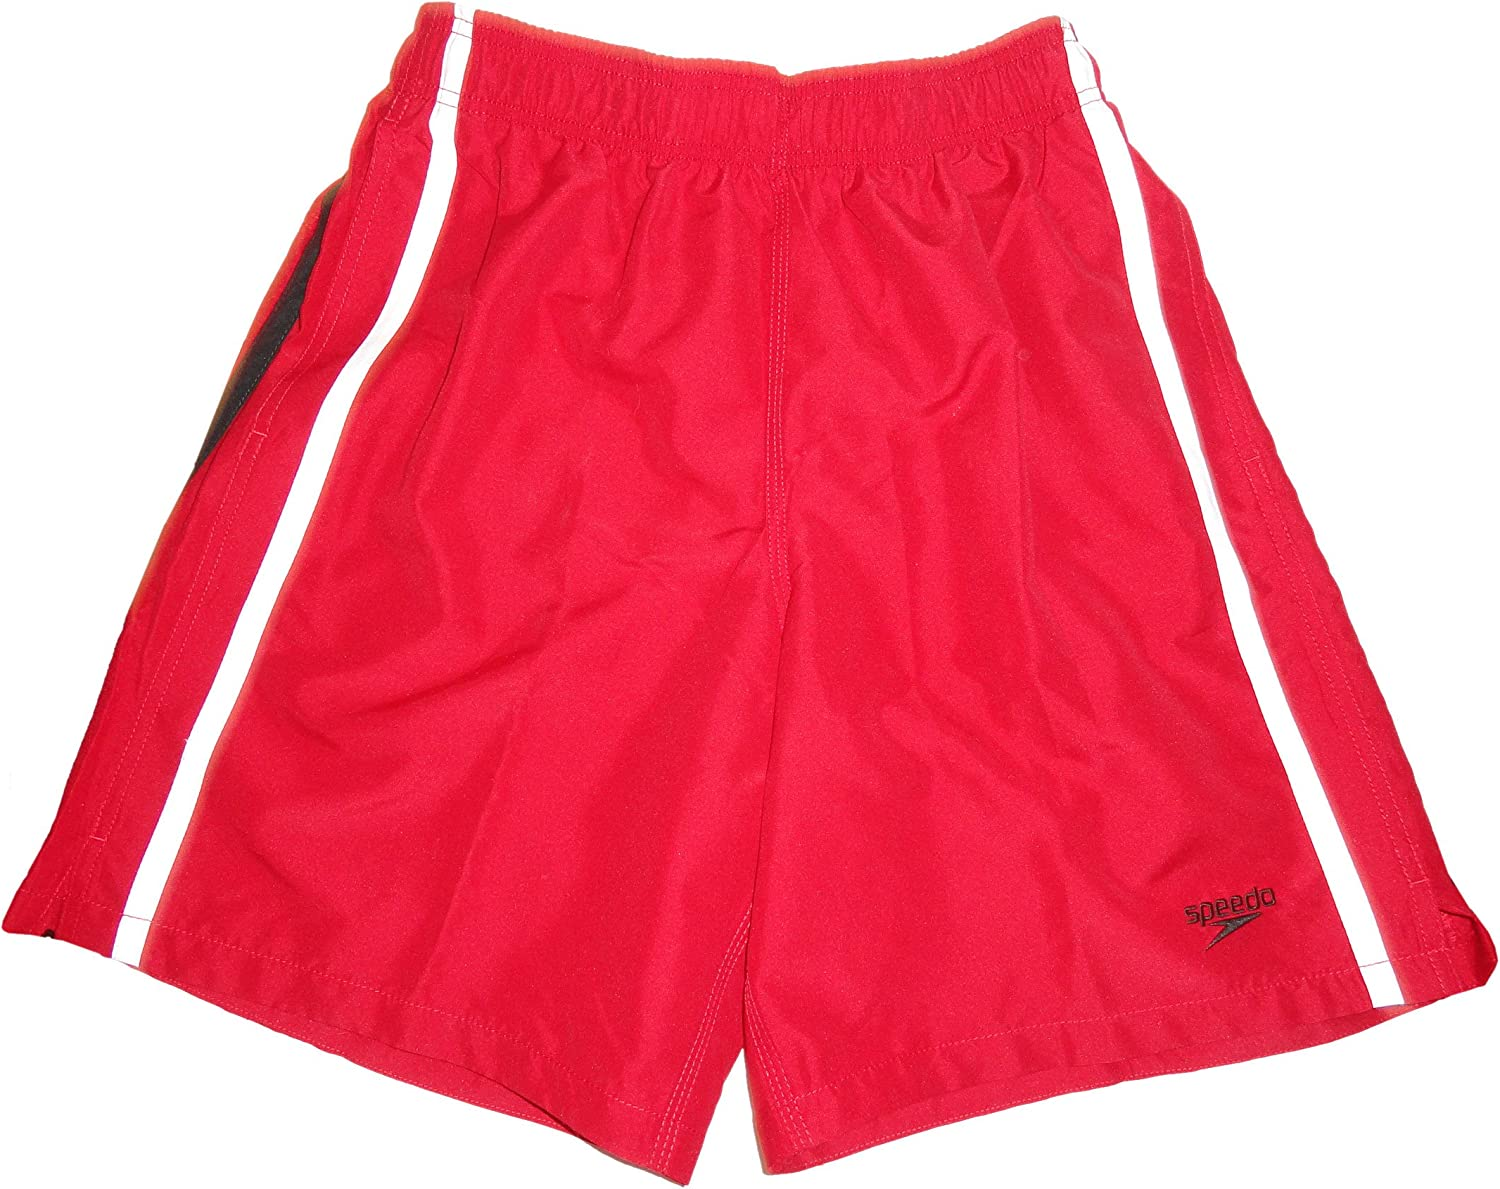 Men's Speedo Swimming Trunks Watershorts Red Pepper Size Small